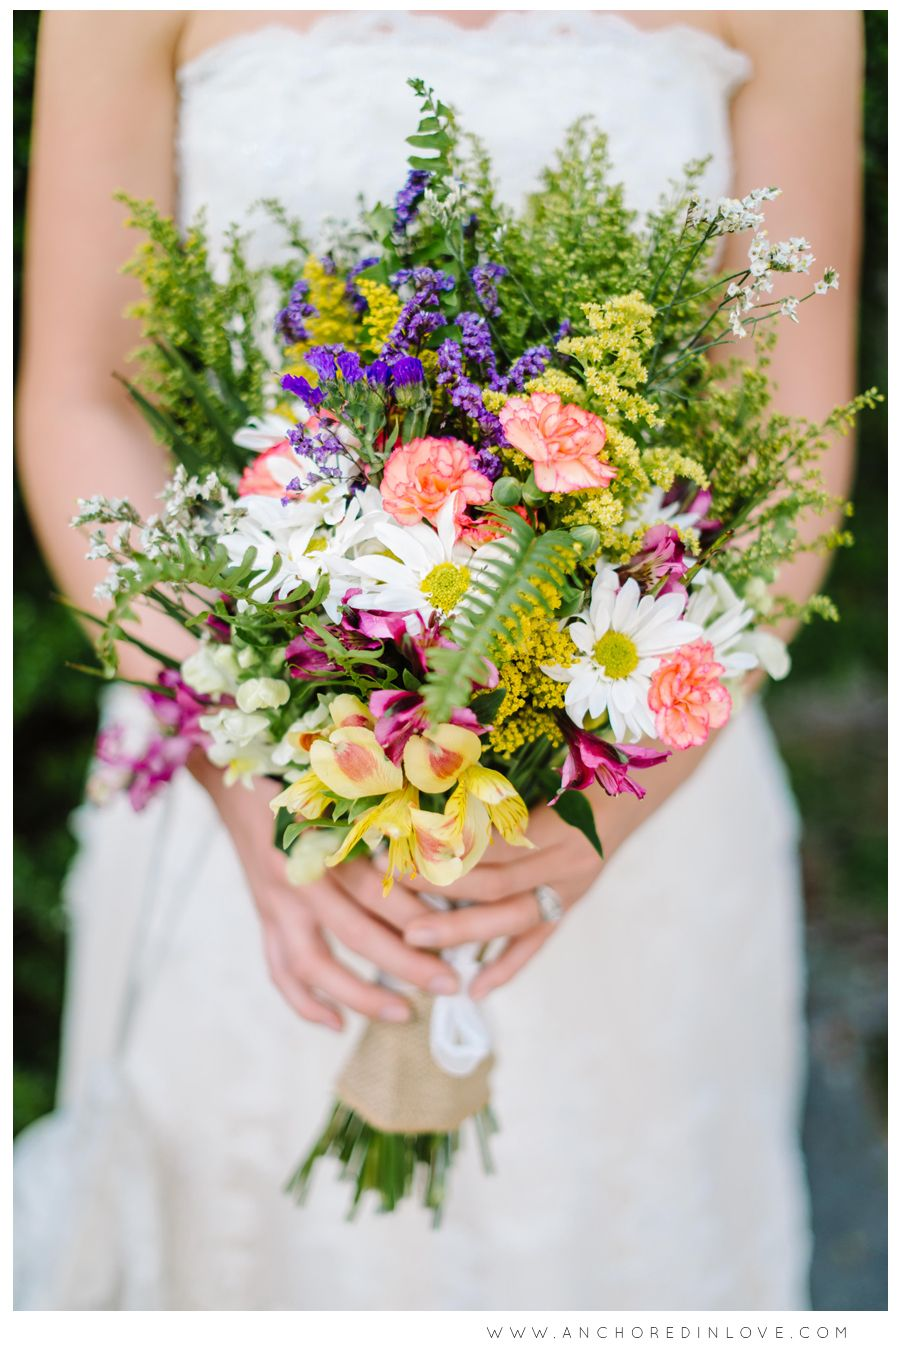 Costco wedding flowers | My Work | Pinterest | Weddings, Wedding and ...